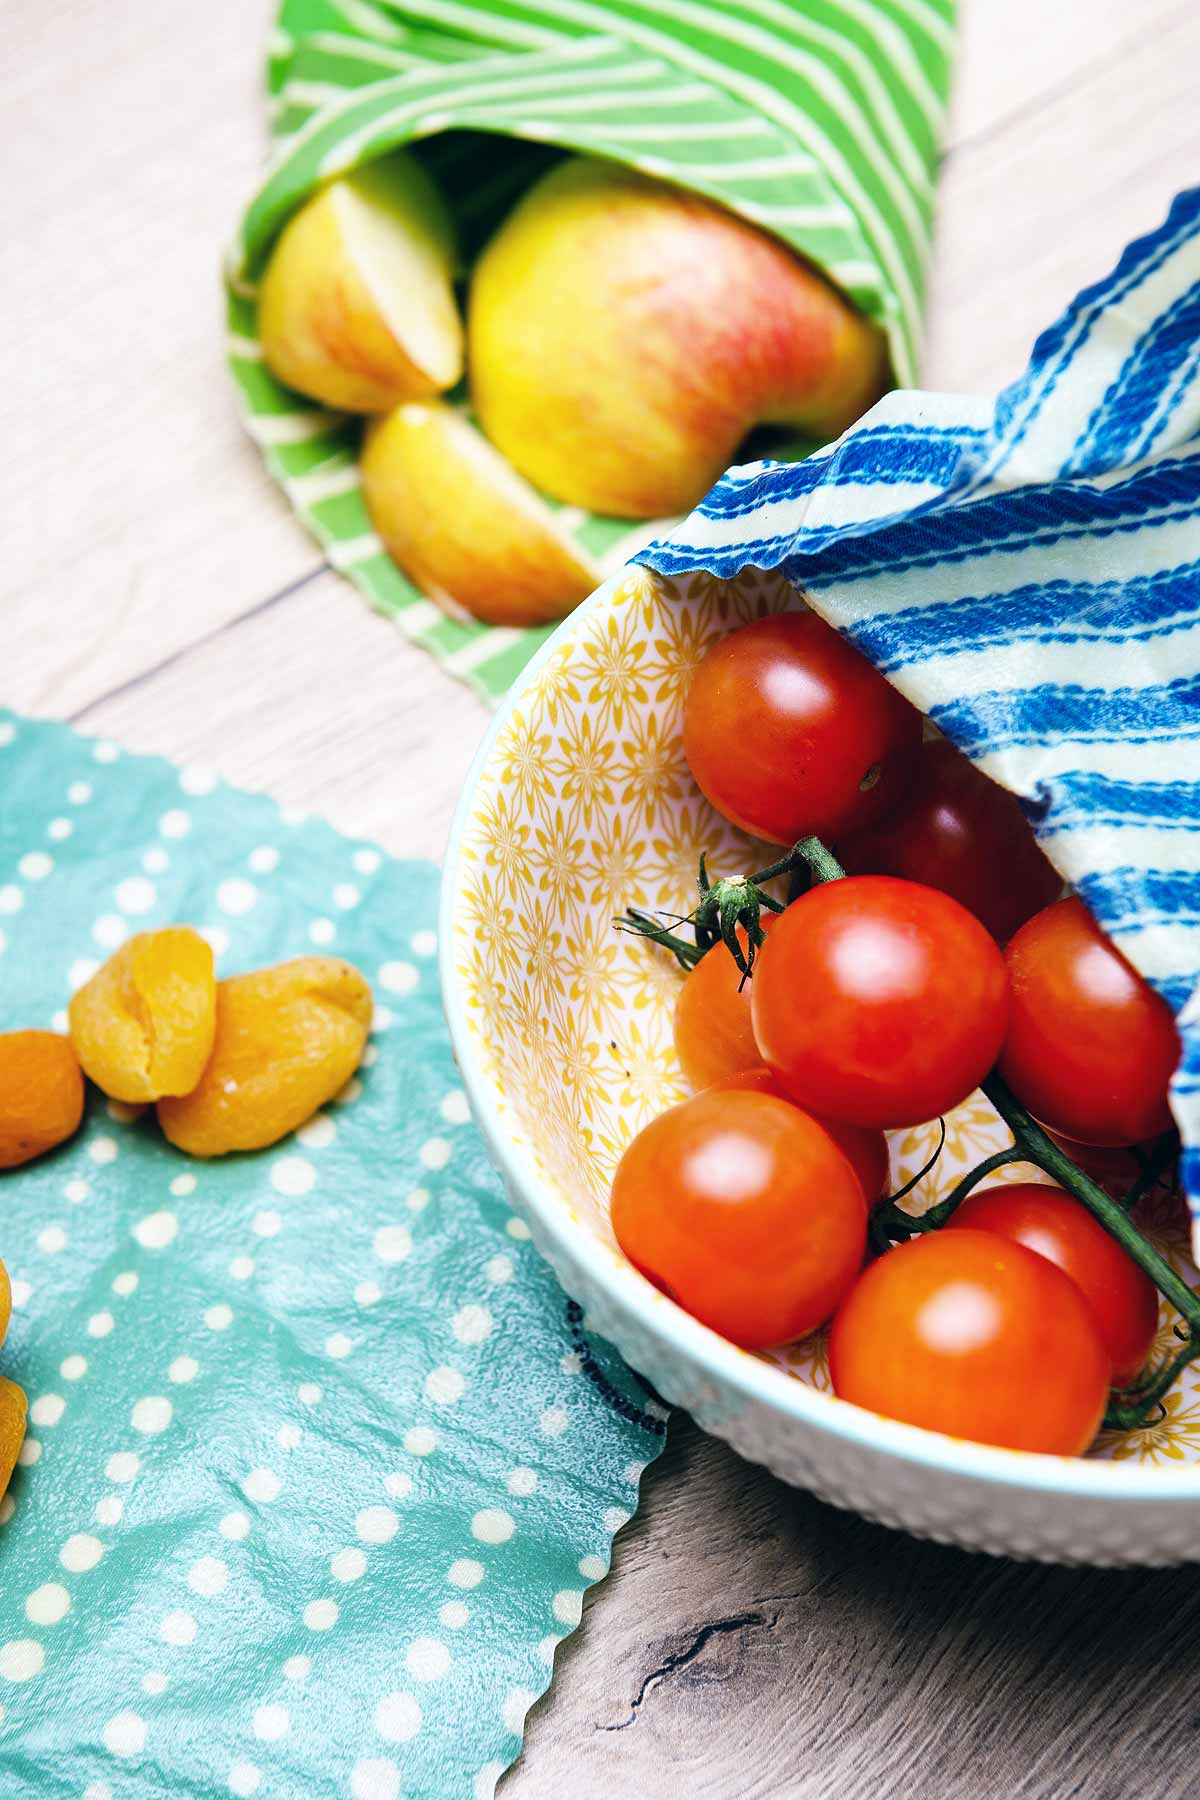 tomatoes in bowl and fruit on table